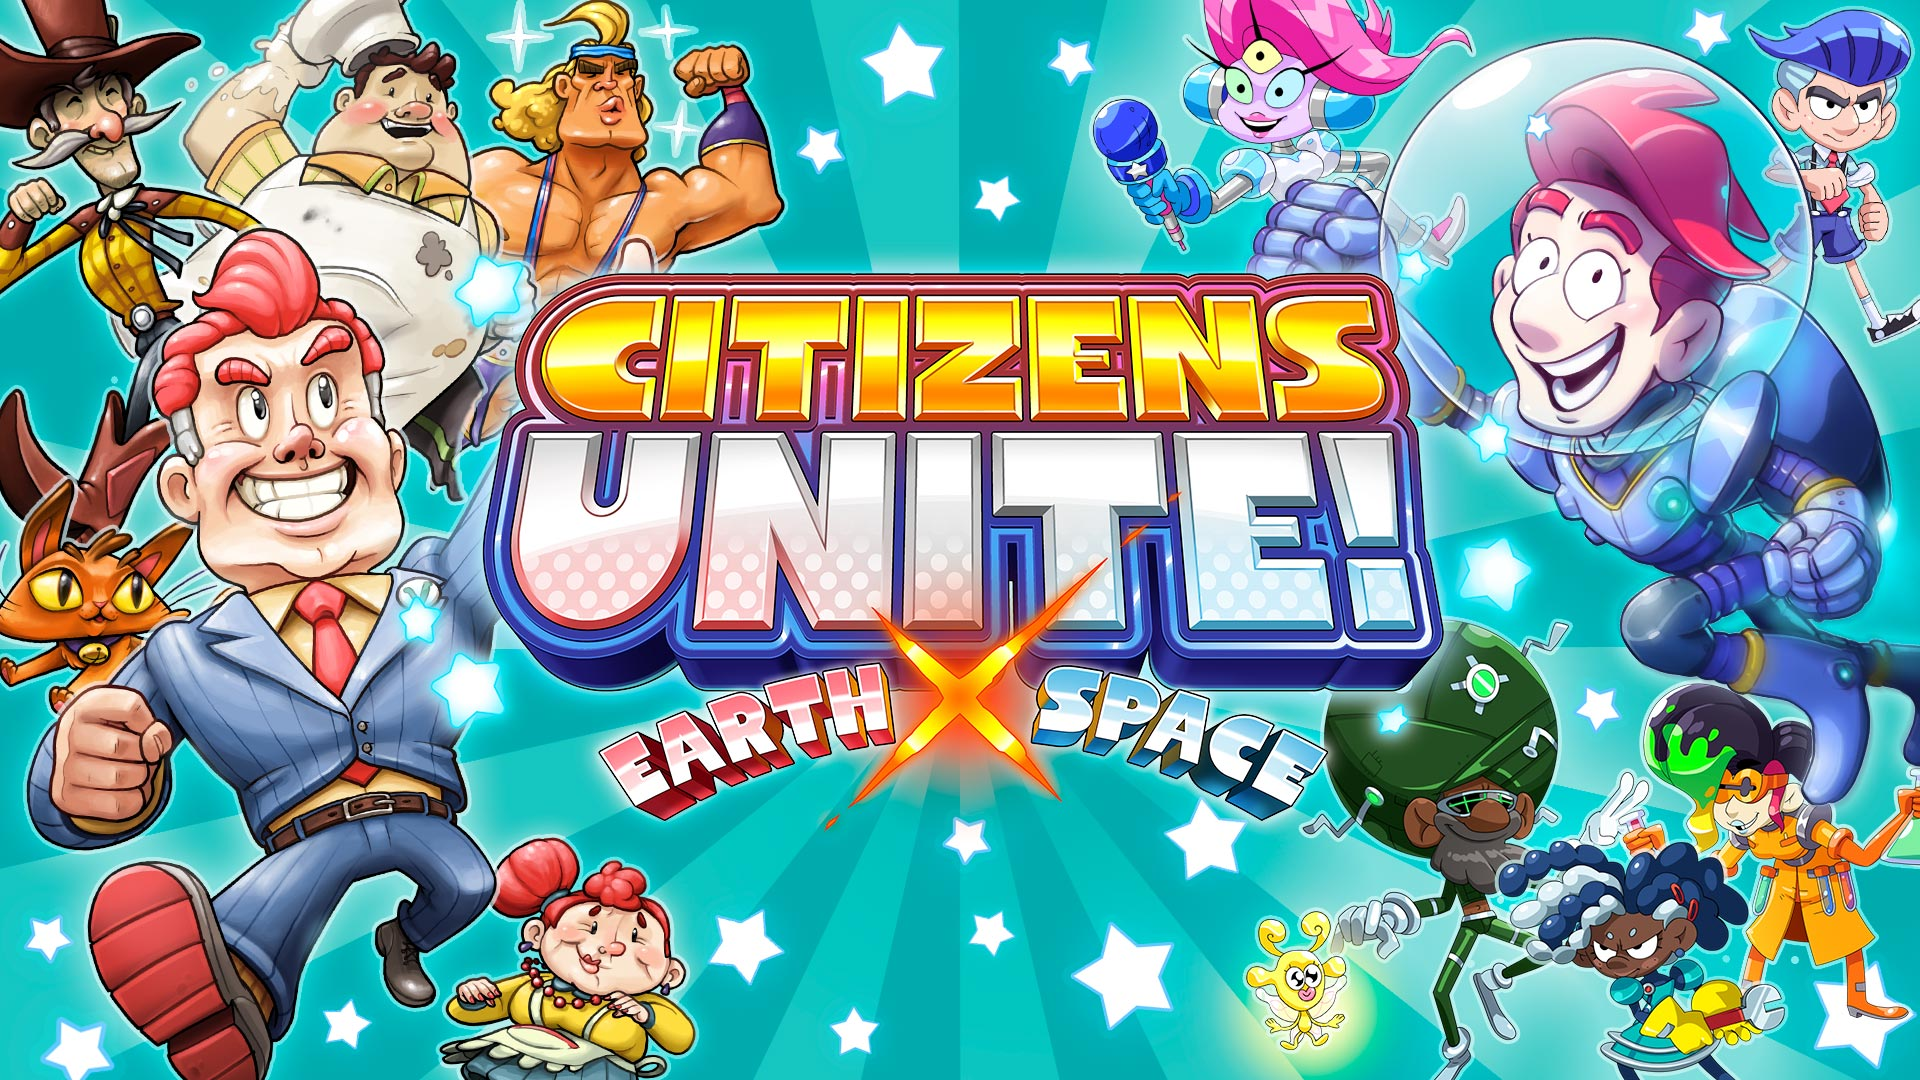 Read more about the article Citizens Unite!: Earth x Space